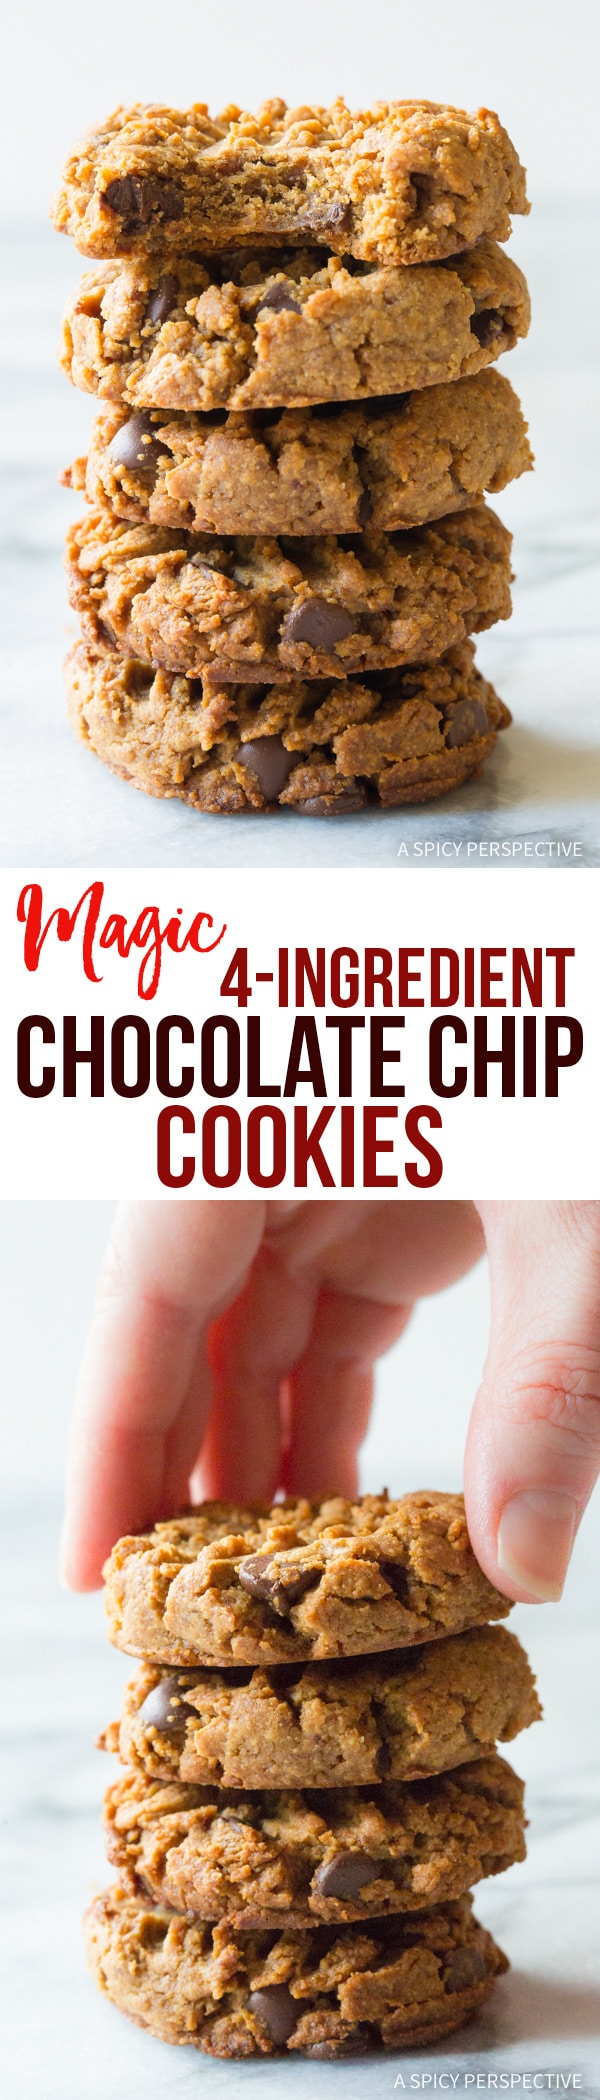 Must Try! Magic 4-Ingredient Chocolate Chip Cookies Recipe #healthy #lowcarb #glutenfree #paleo #vegan